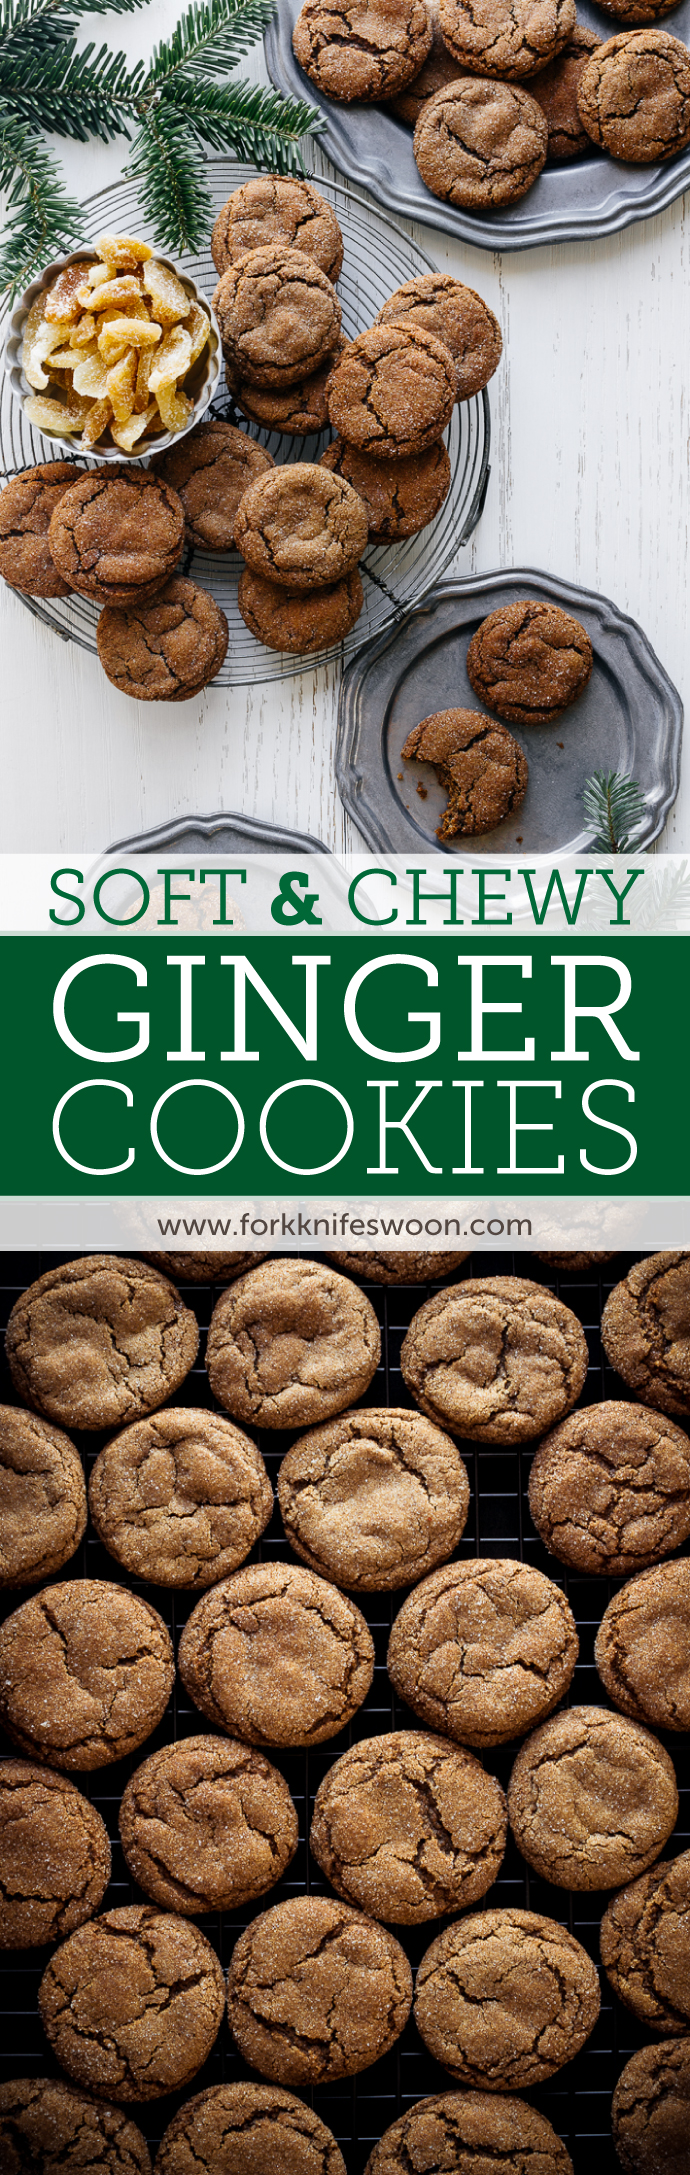 My very favorite Christmas cookie recipe! These easy ginger molasses cookies are soft, chewy, full of flavor, and always first on my holiday cookie baking list. | via forkknifeswoon.com